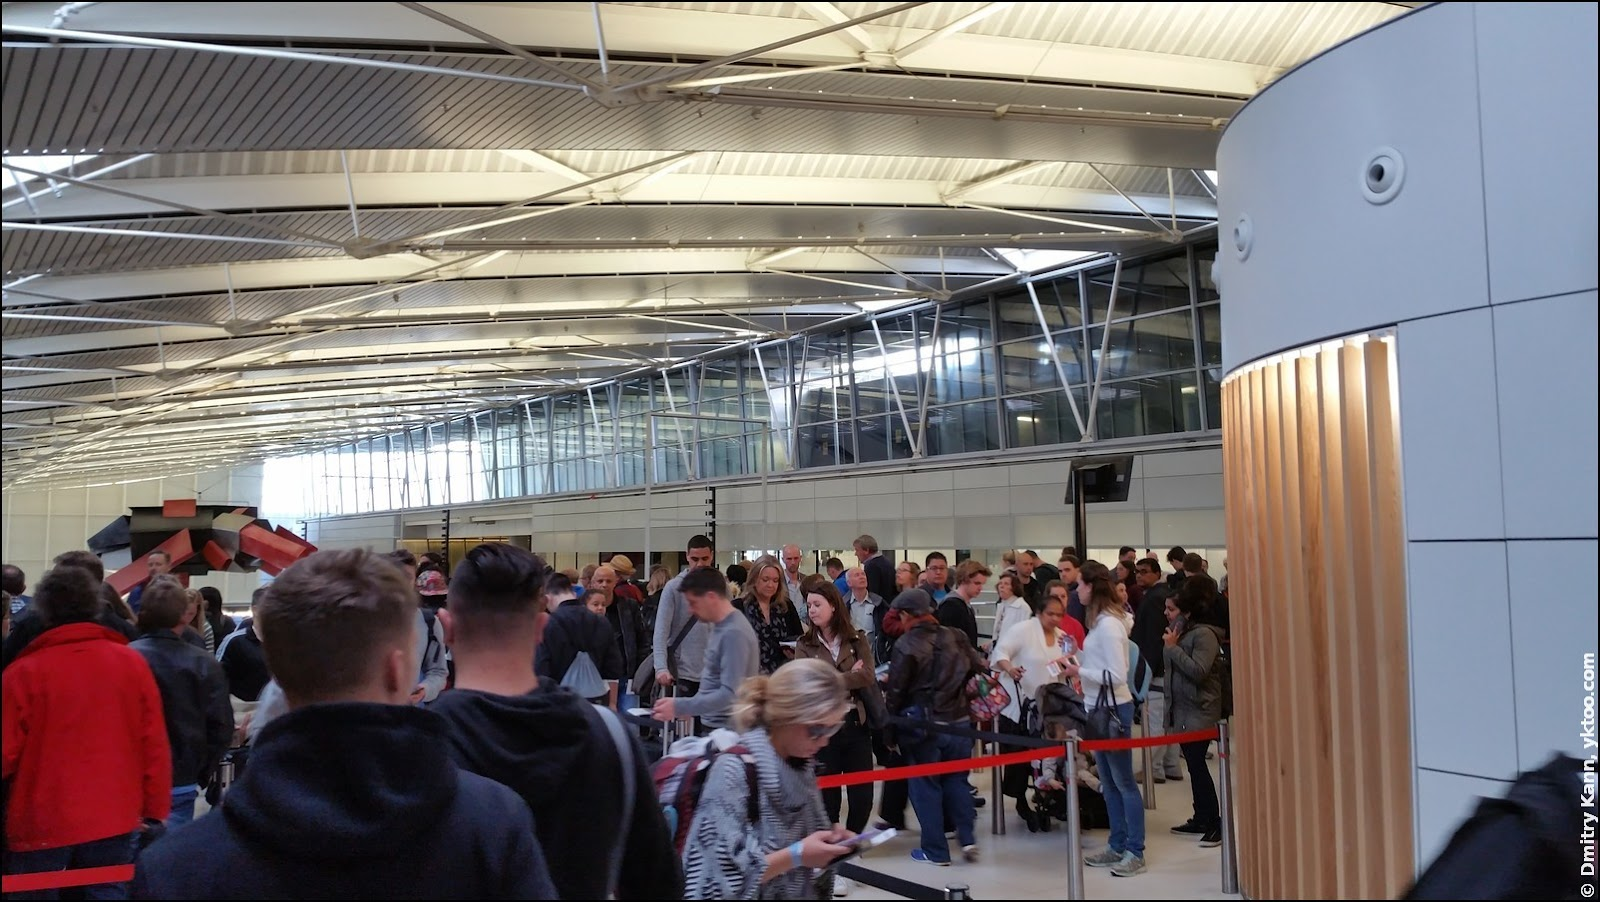 Schiphol: queue for security check.